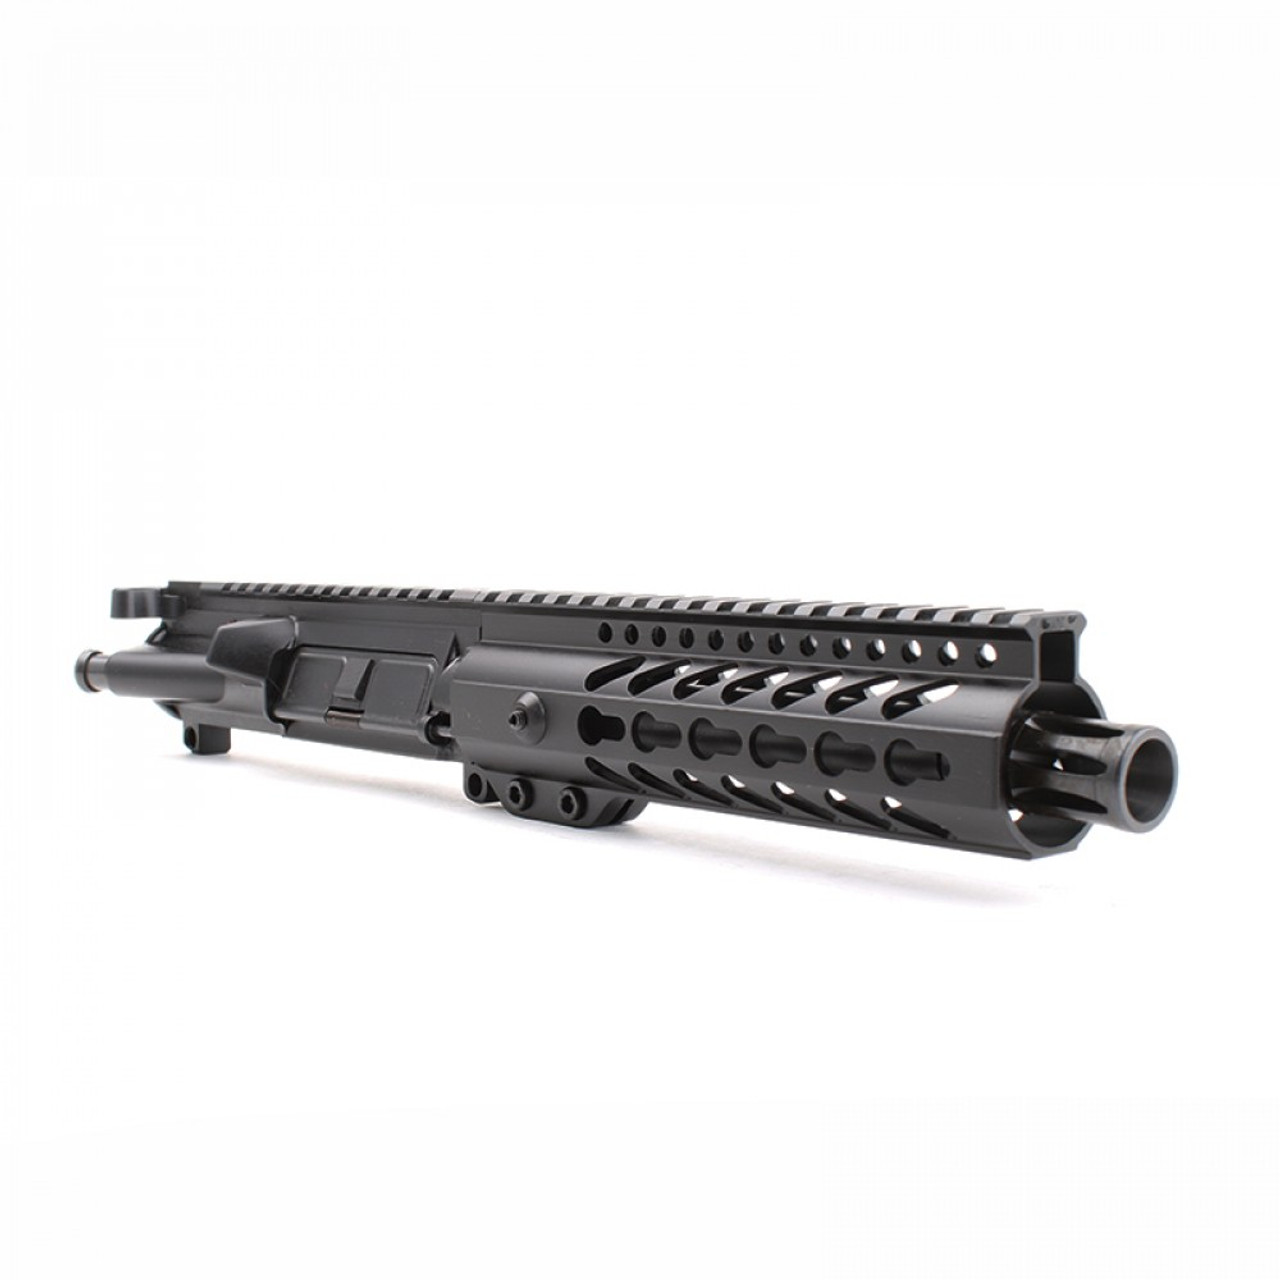 """MDX Arms AR-9mm Pistol 7.5"""" 1:10T with 7' Super Slim Mlok HG angled view"""